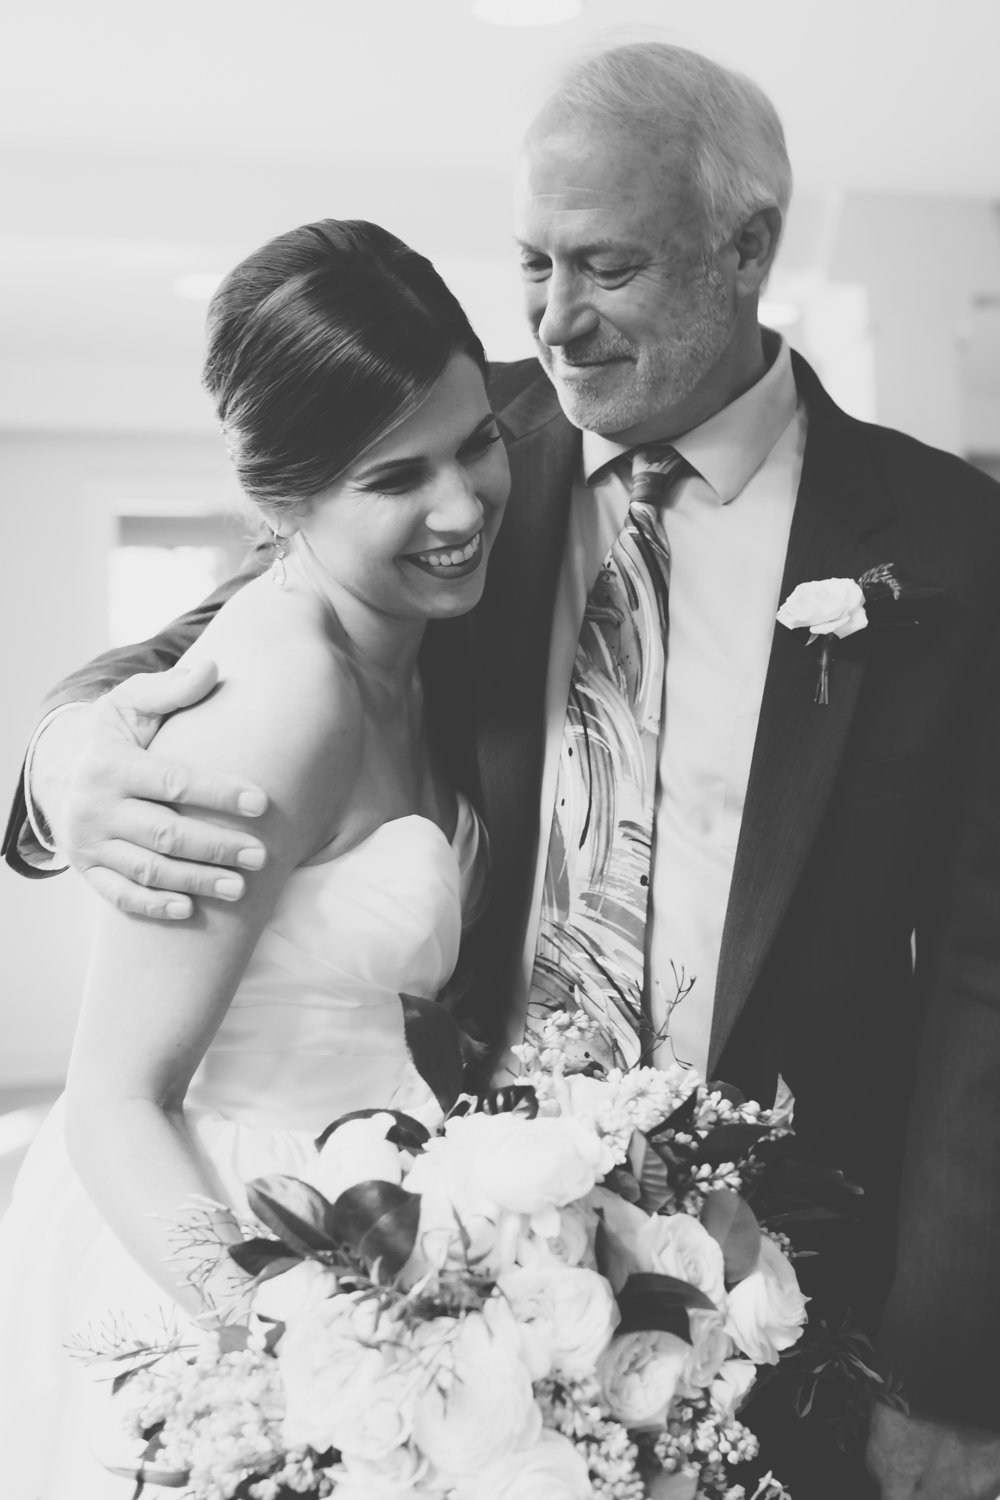 charleston wedding, charleston wedding photographers, charleston wedding photography, best charleston wedding photographers, destination wedding photographers, alhambra hall